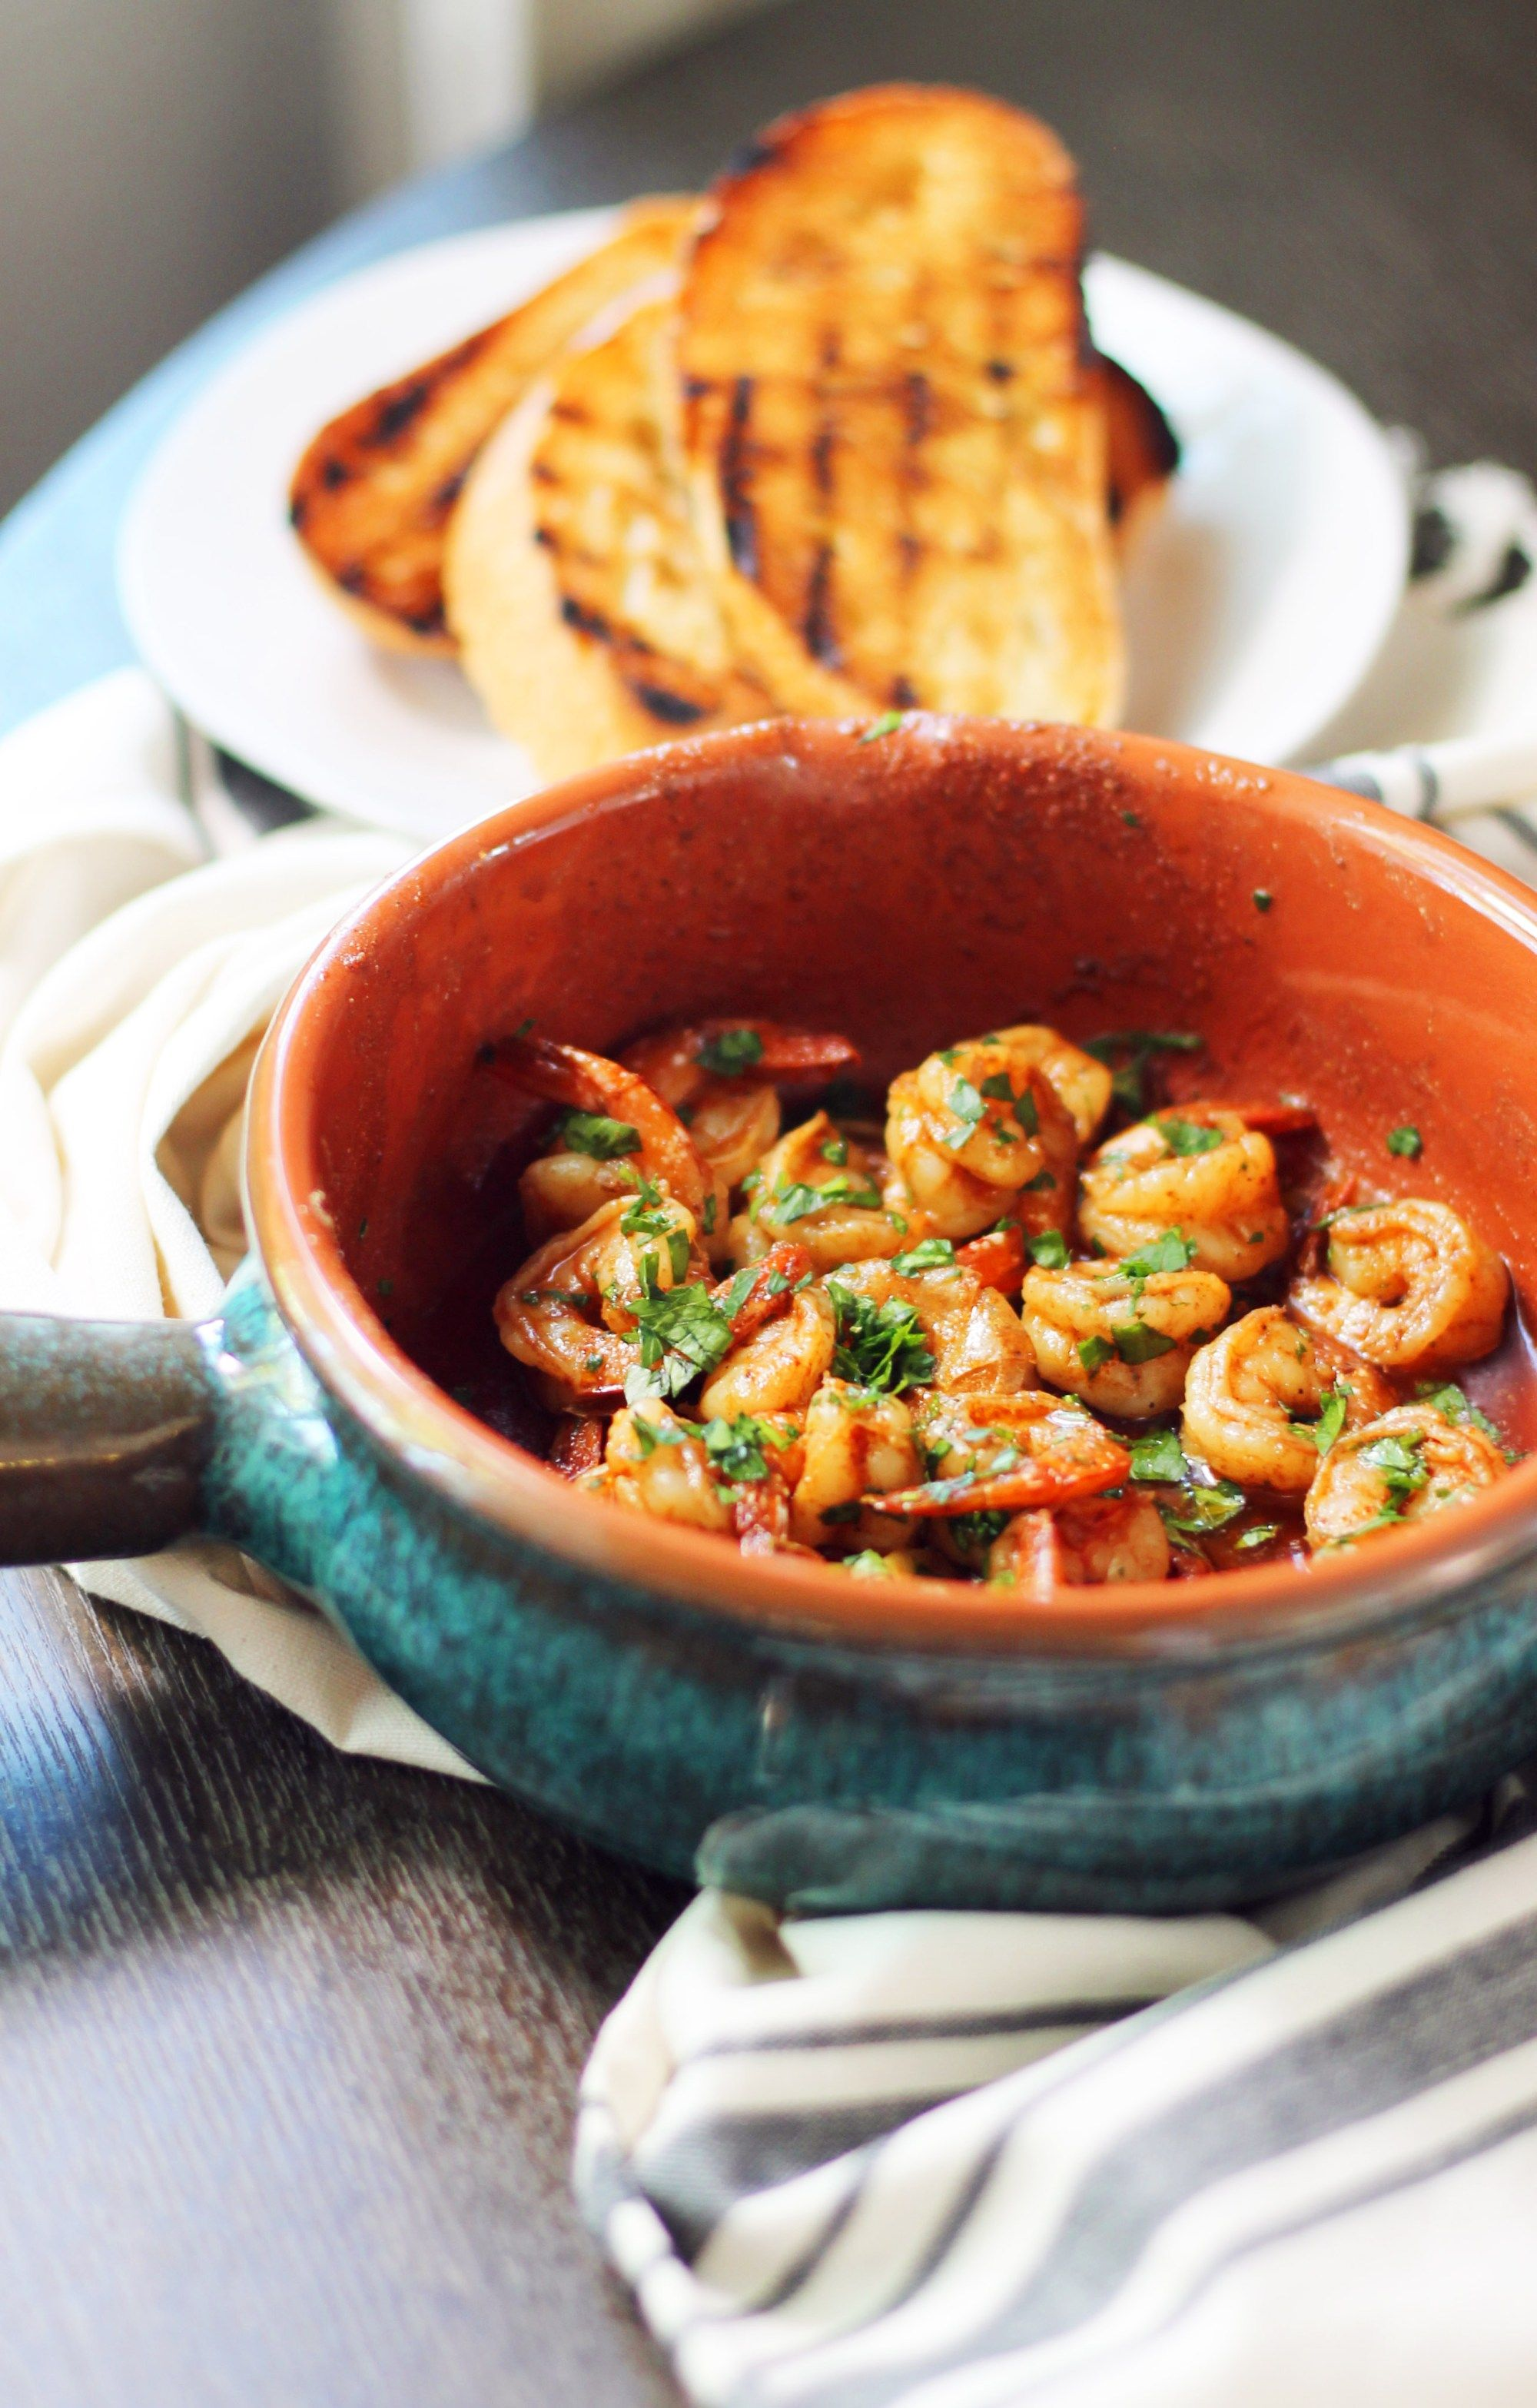 Spanish shrimp recipe tapas recipes tapas and spanish easy spanish shrimp tapas recipe so much spanish flavor packed into one little dish forumfinder Gallery